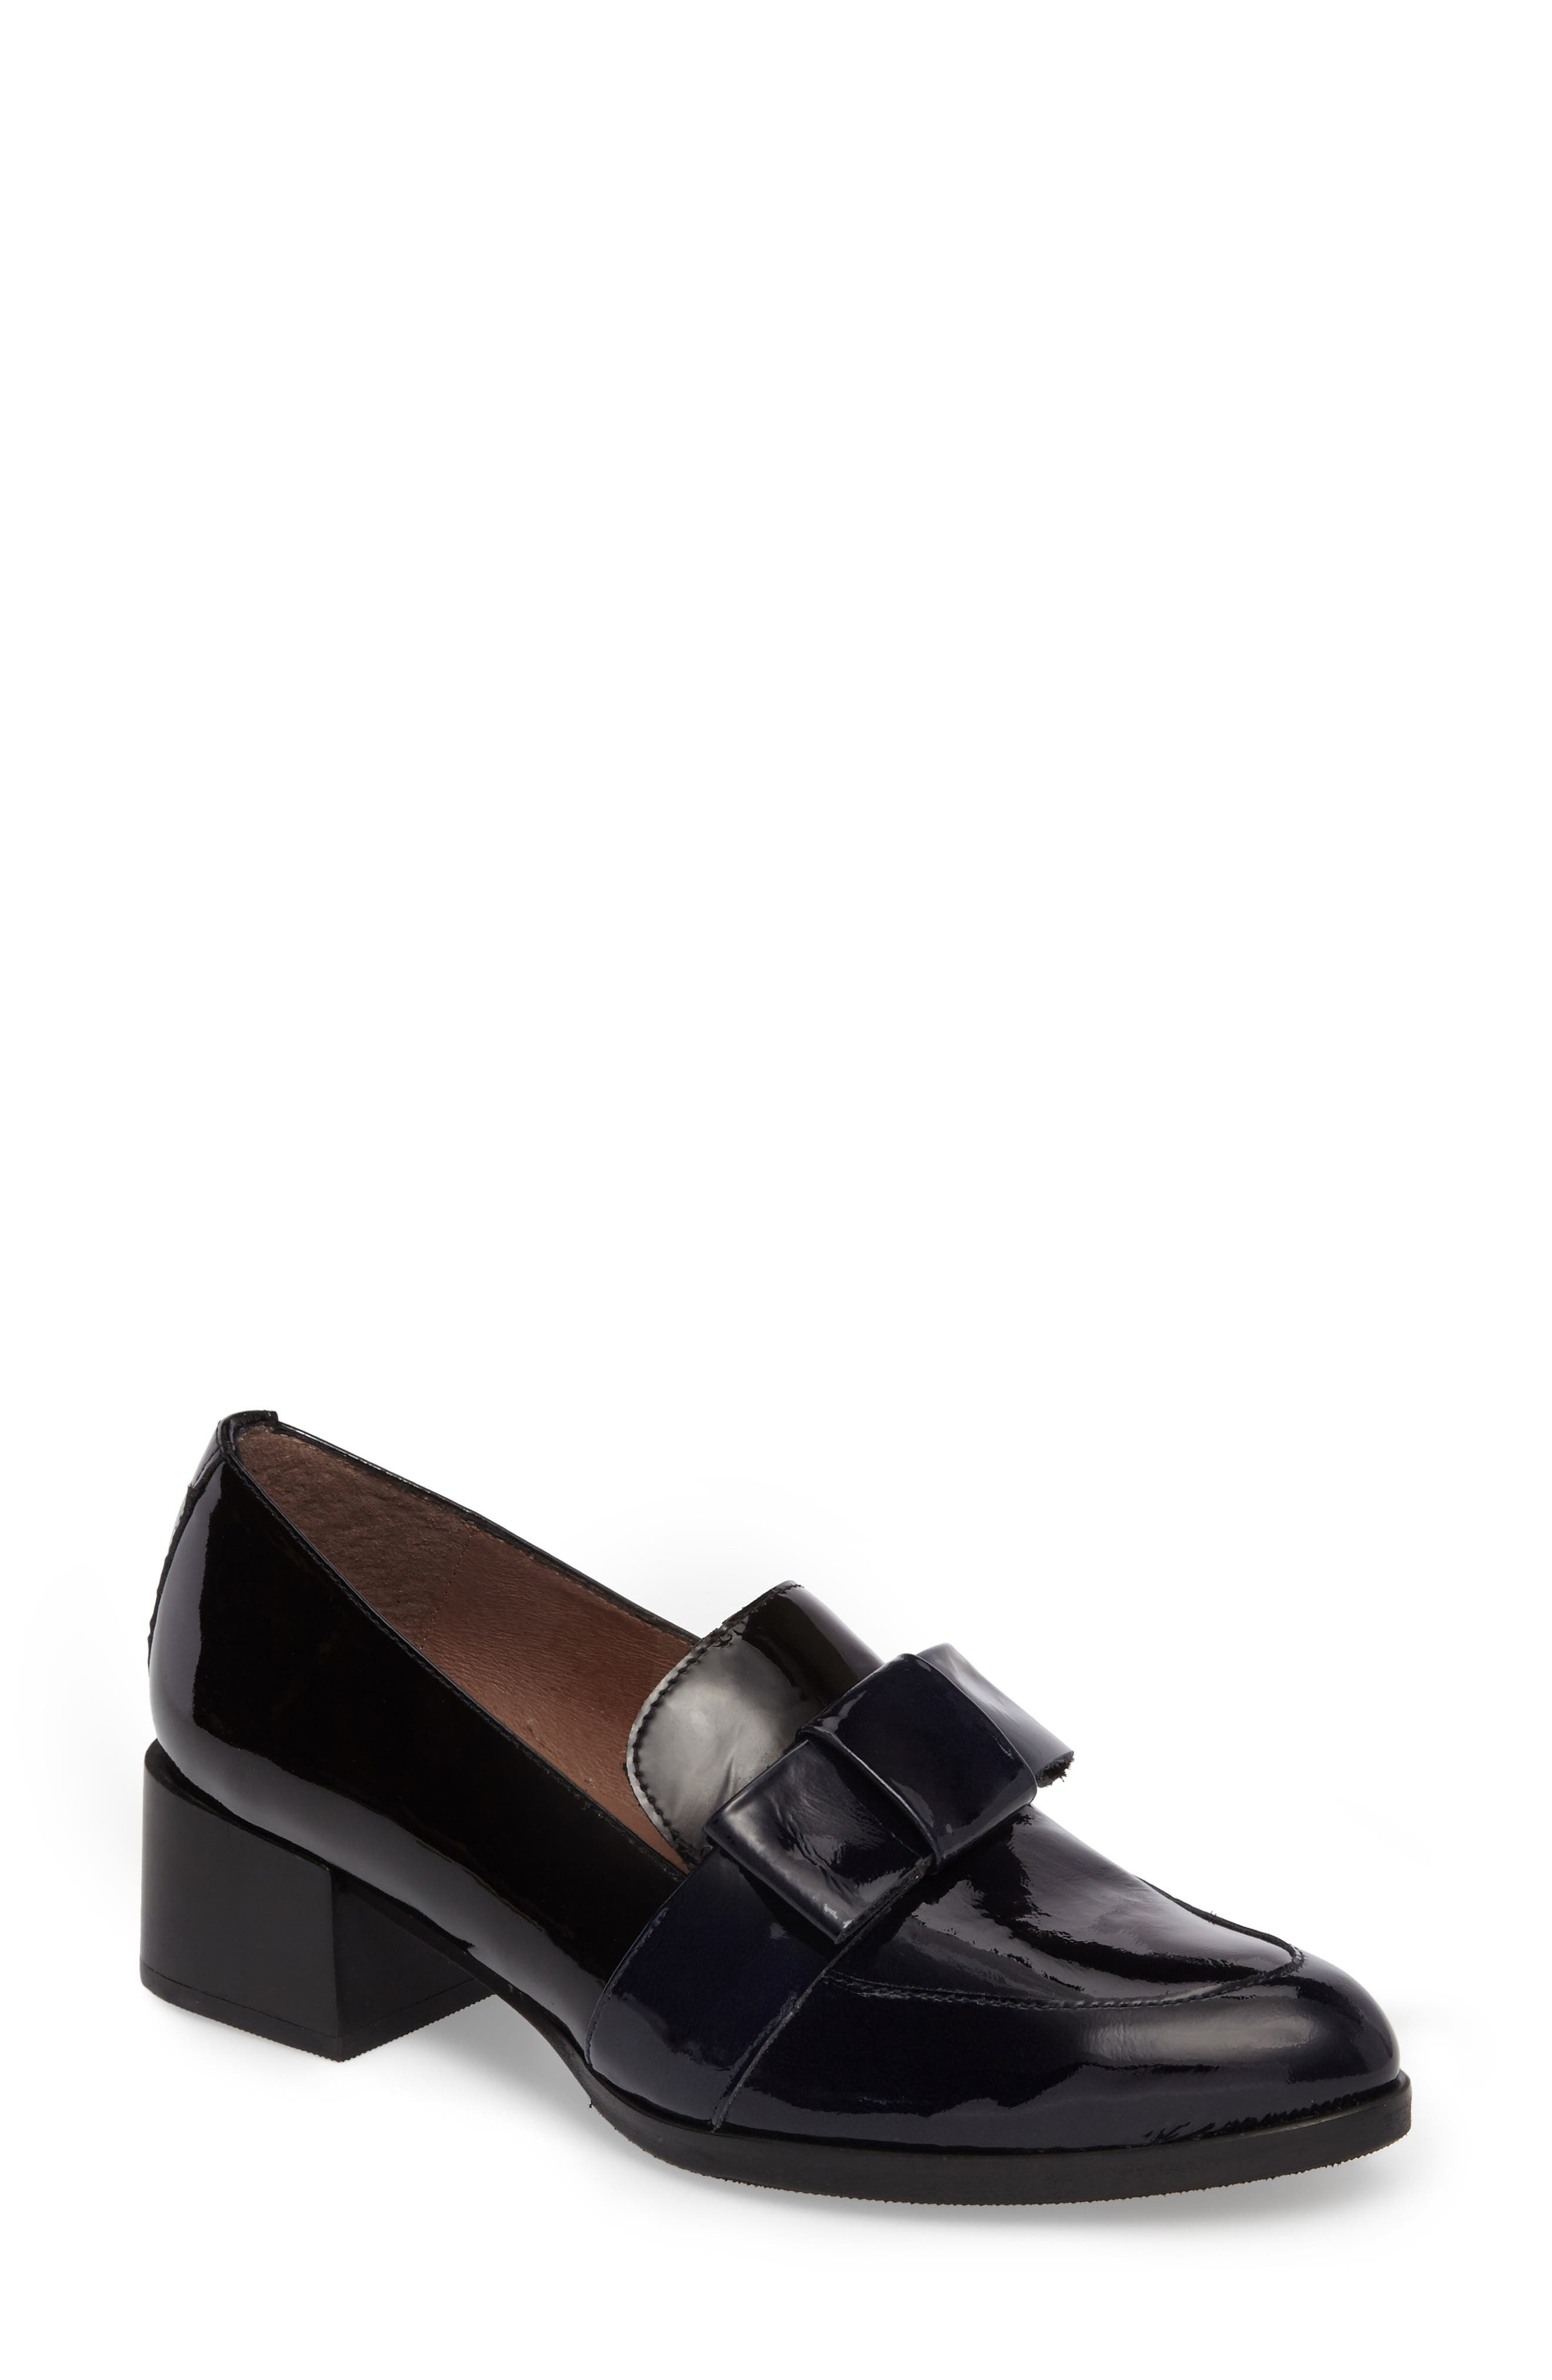 Block Heel Loafer Pump,                         Main,                         color, NAVY/ BLACK PATENT LEATHER